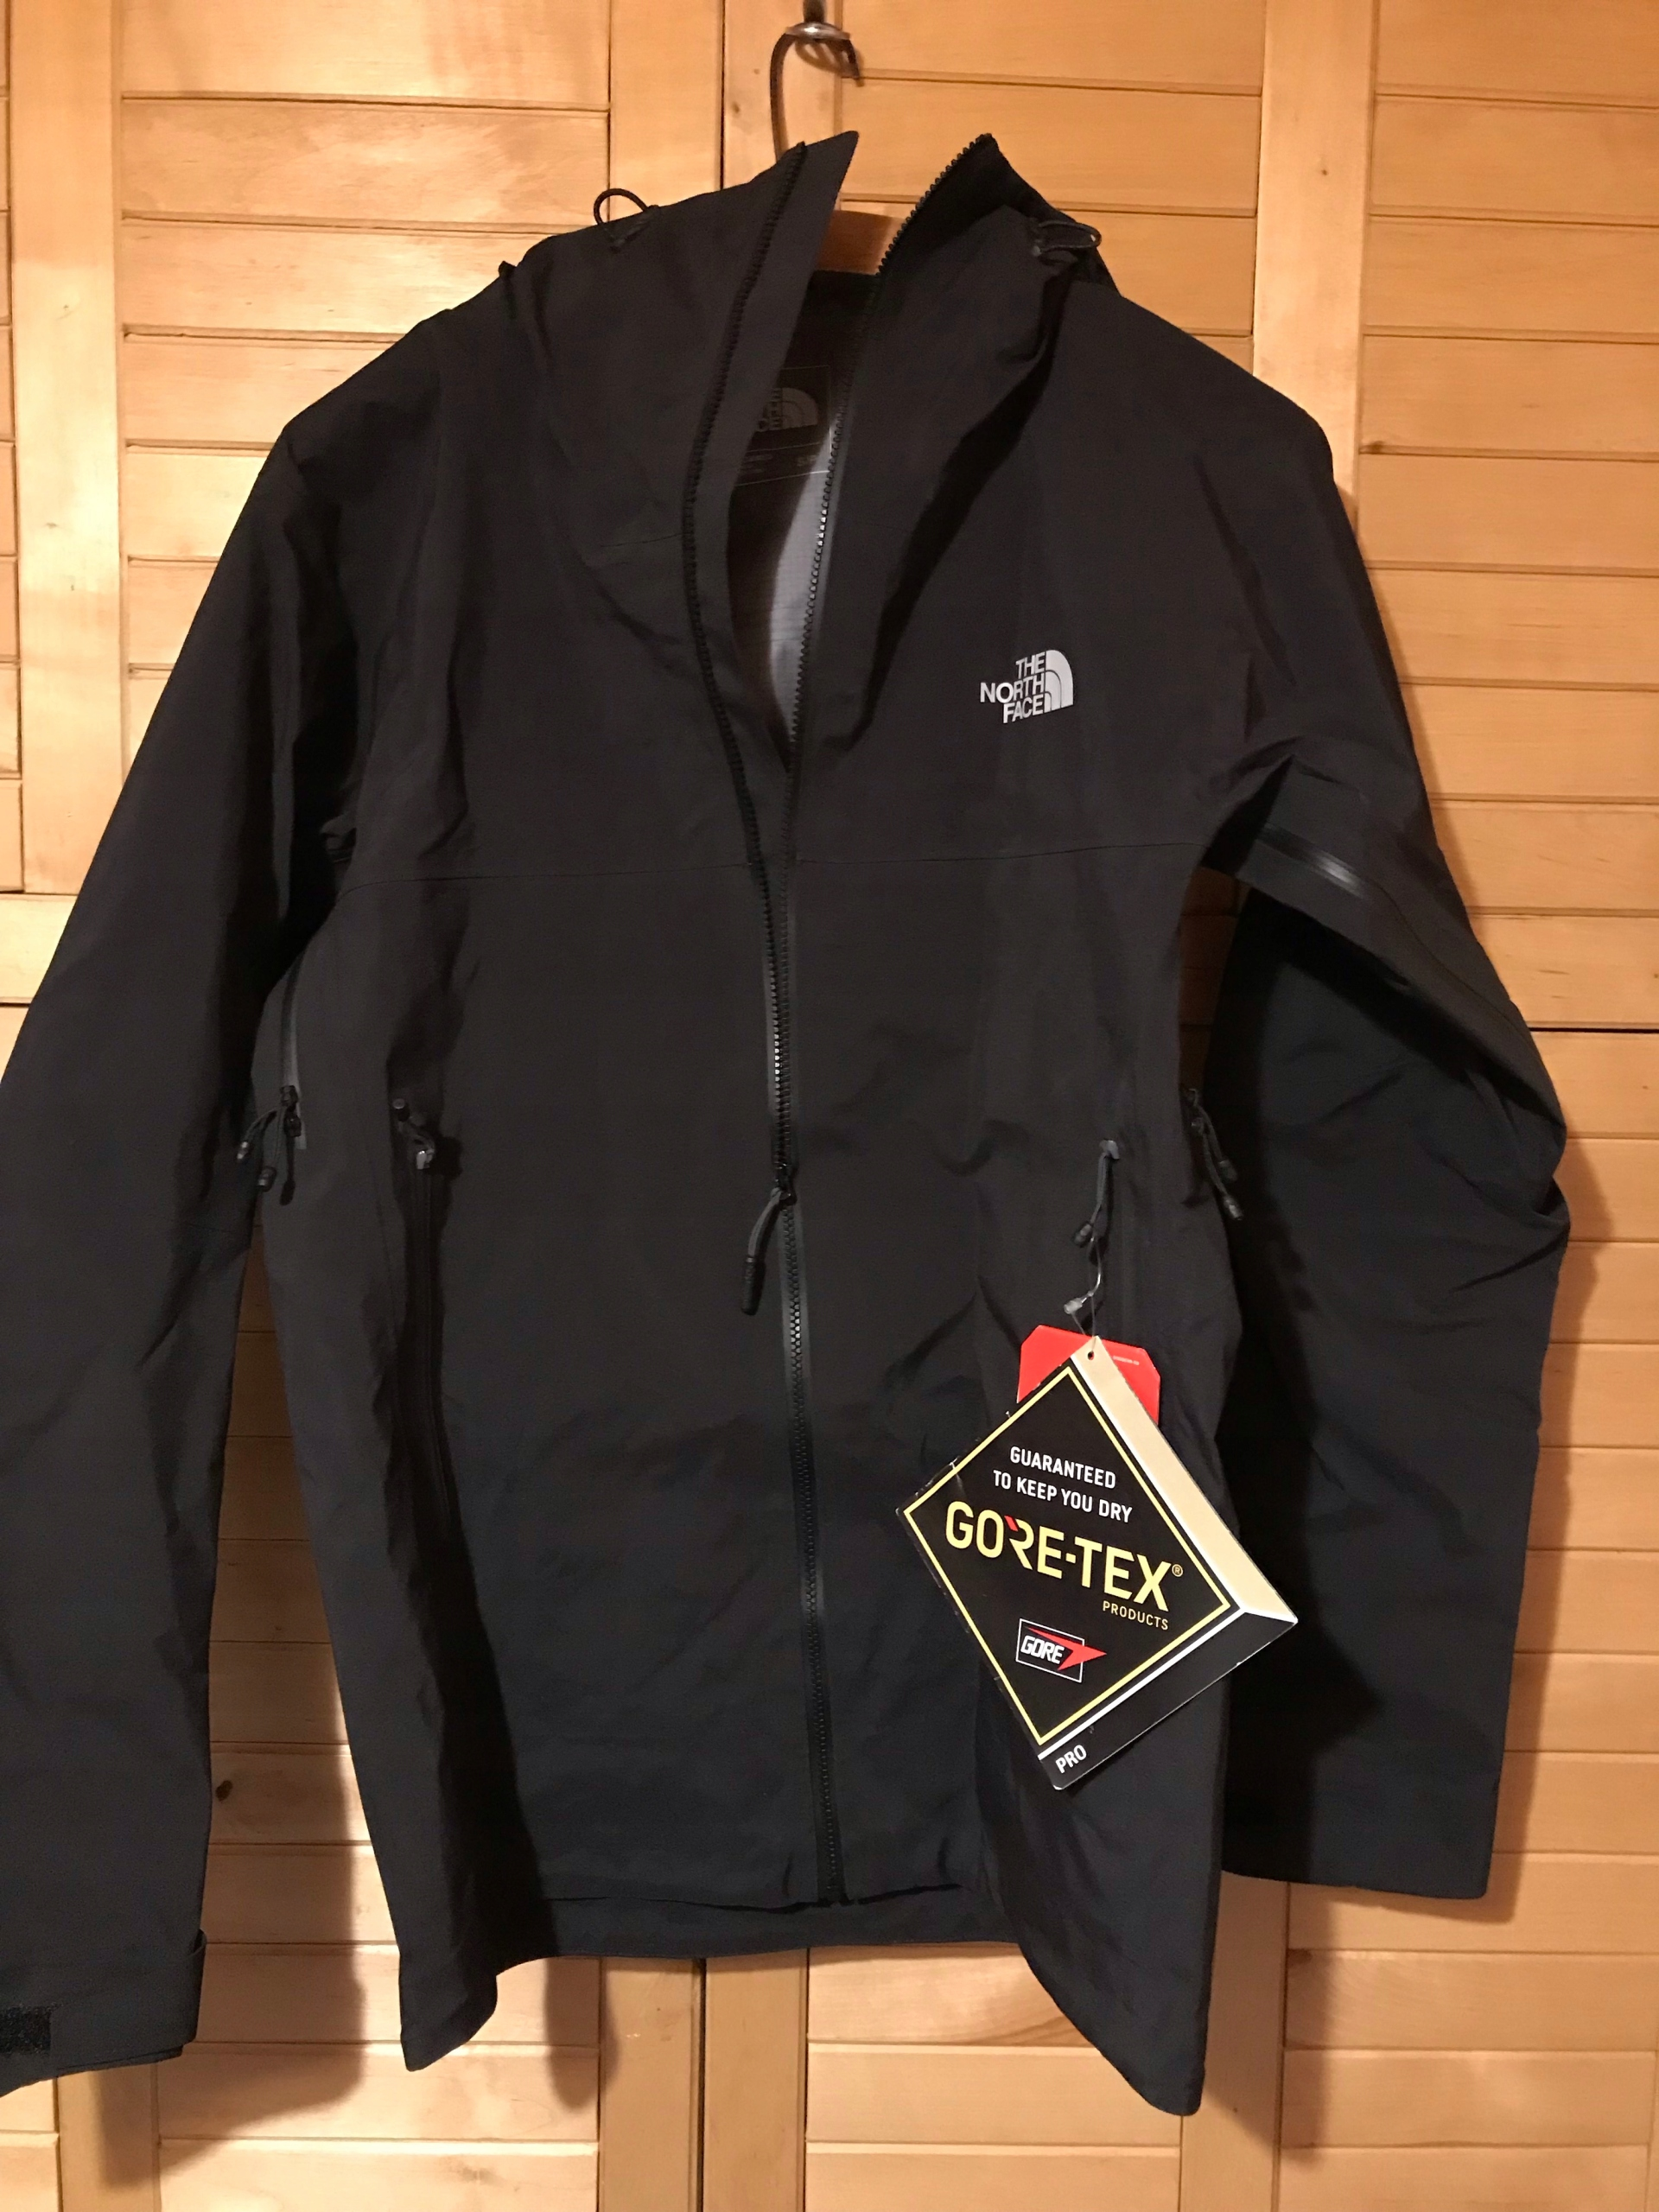 Kurtka The North Face Point Five nowa gore-tex pro